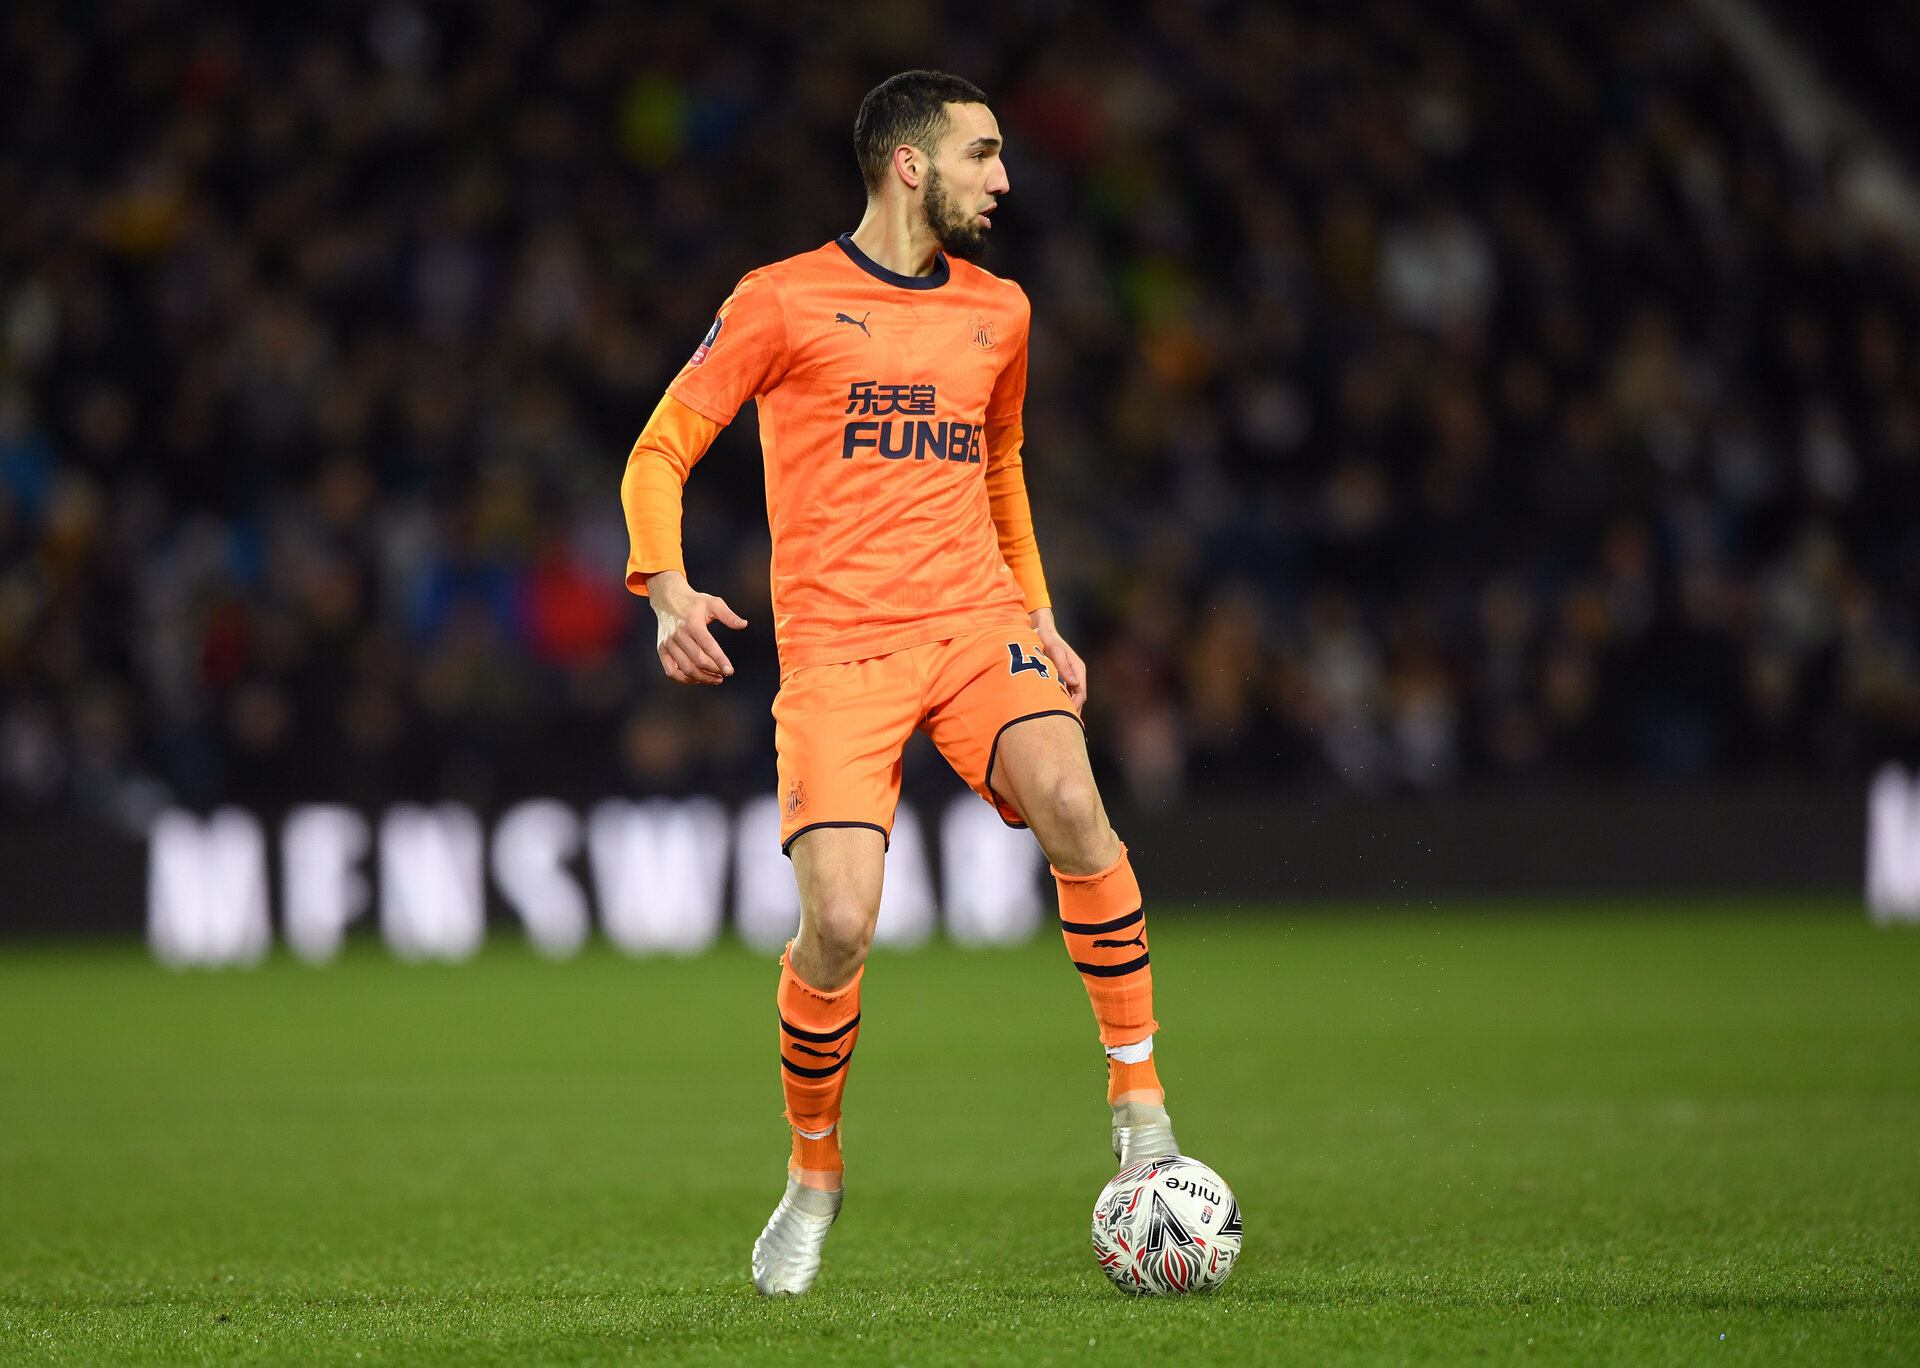 WEST BROMWICH, ENGLAND - MARCH 03: Nabil Bentaleb  of Newcastle United in action during the FA Cup Fifth Round match between West Bromwich Albion and Newcastle United at The Hawthorns on March 03, 2020 in West Bromwich, England. (Photo by Stu Forster/Getty Images)